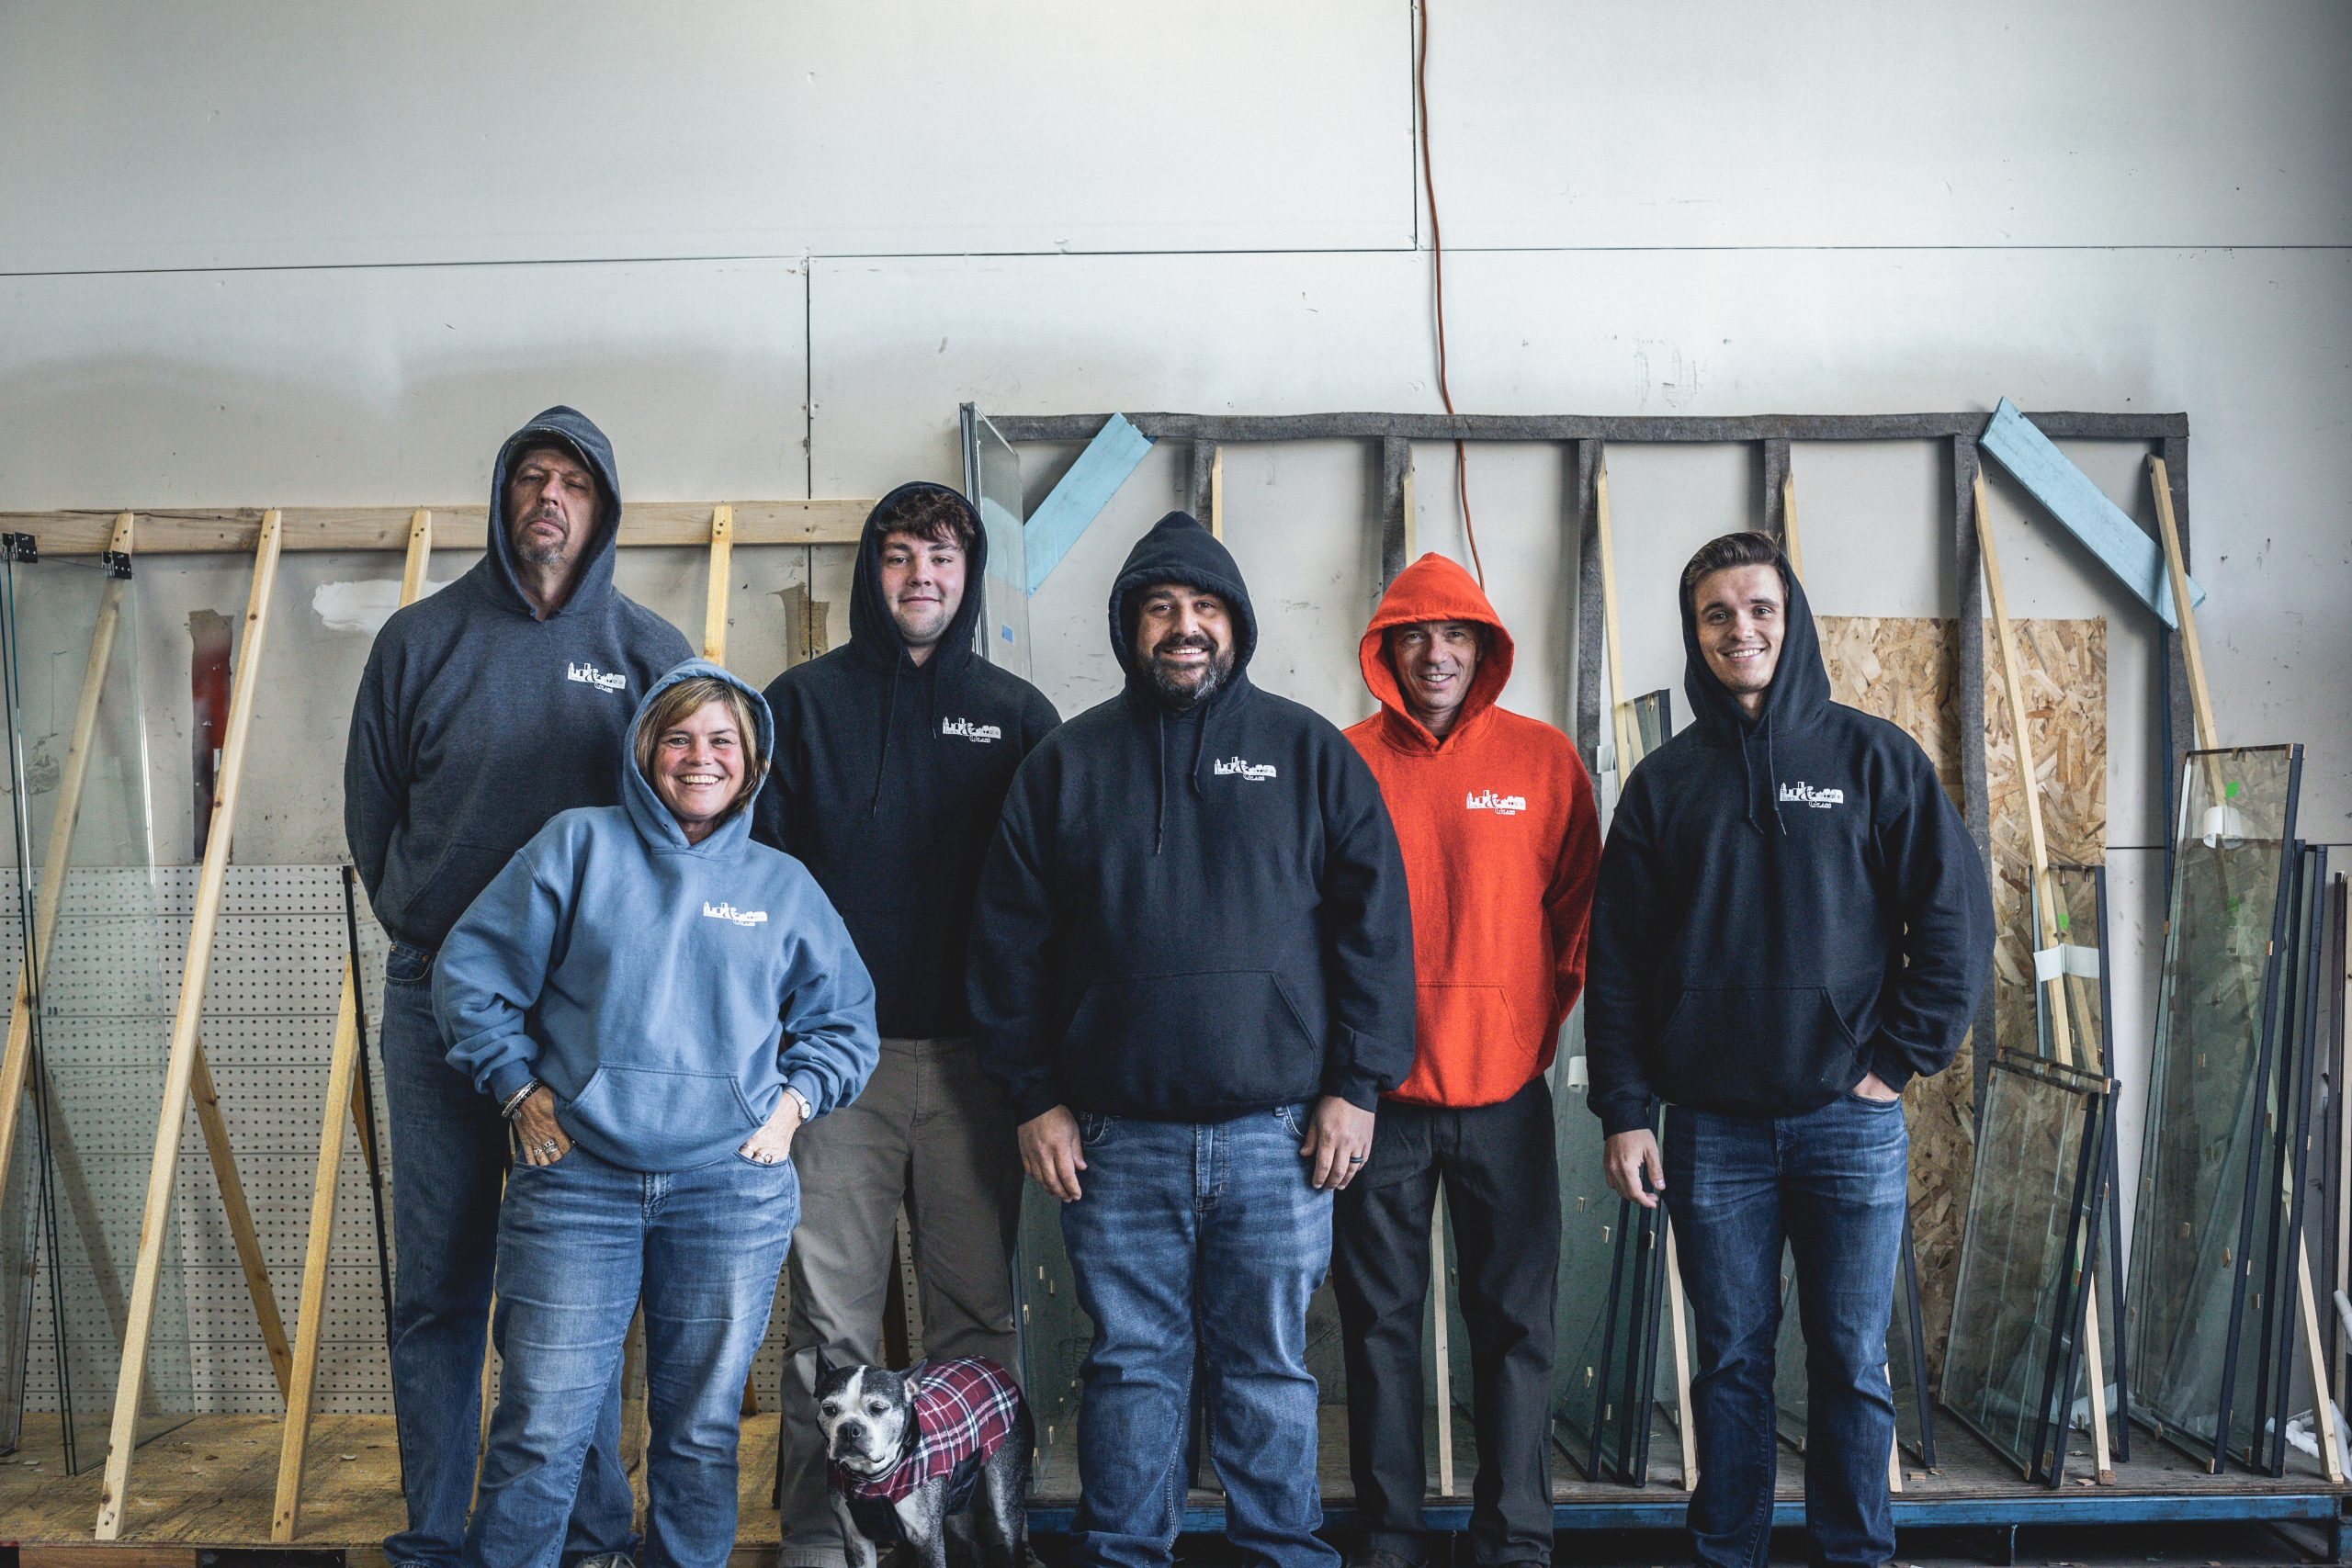 The Colton window screen repair crew at T&C Glass